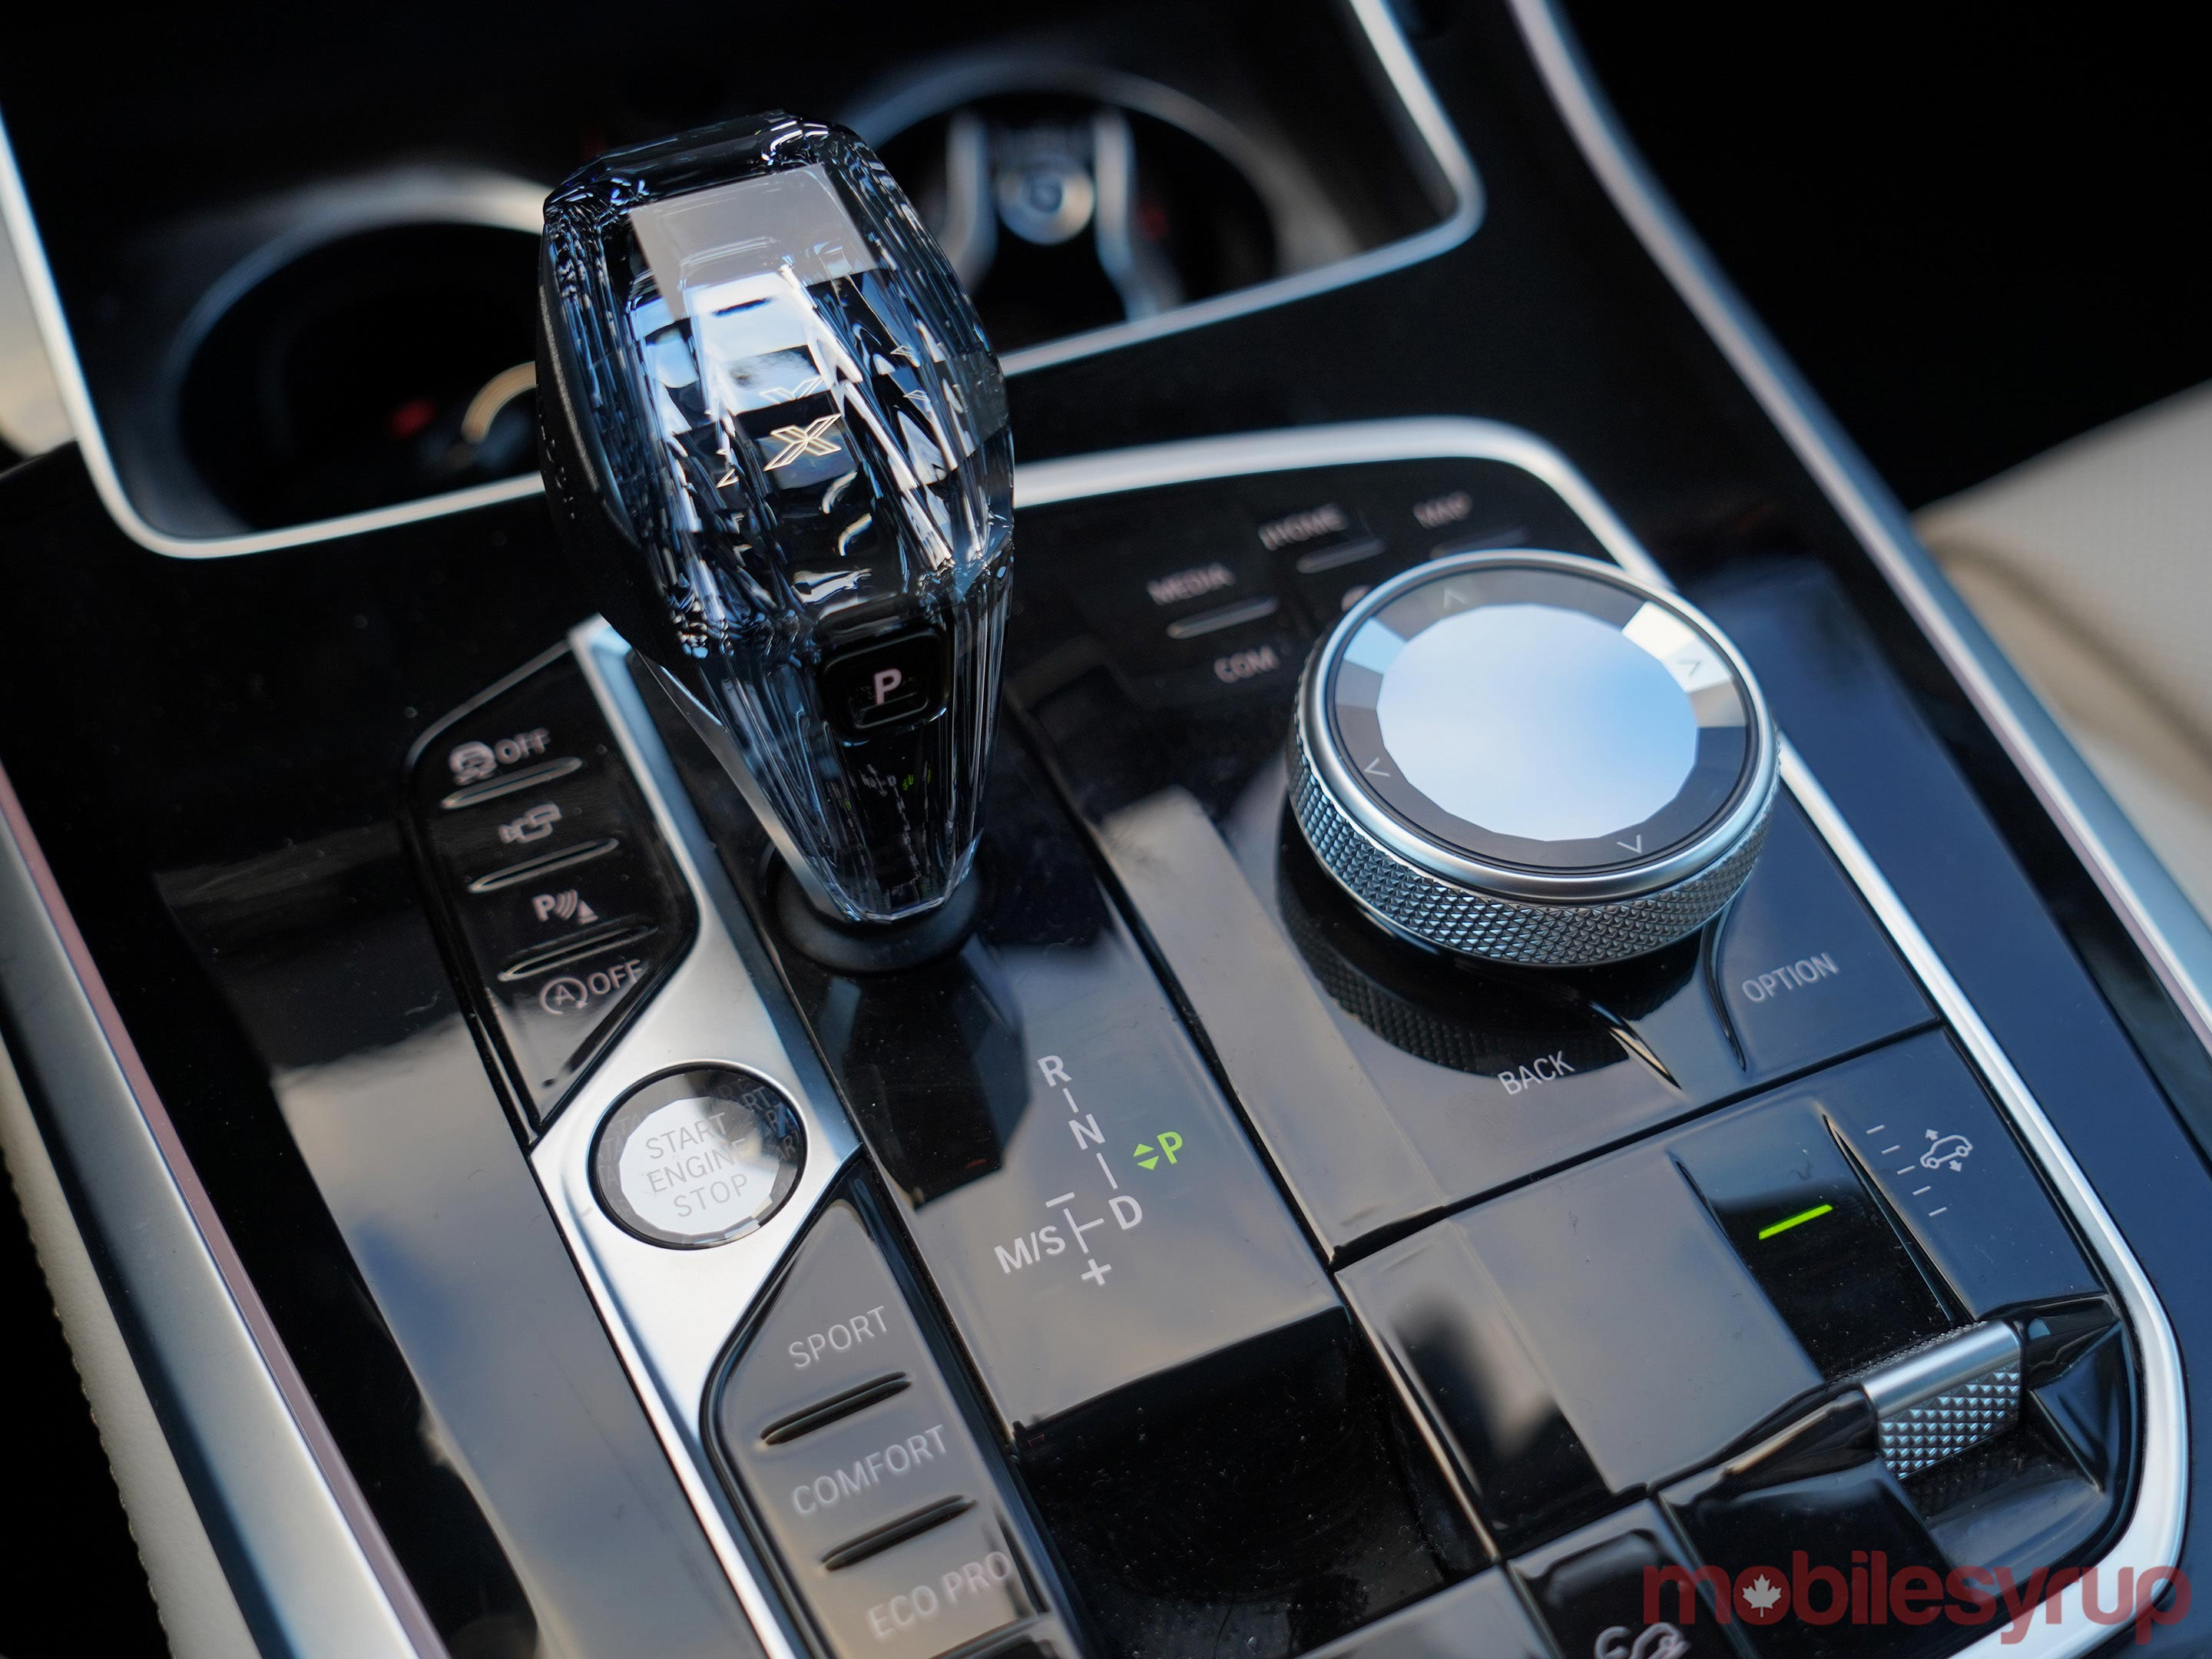 BMW X5 centre controls